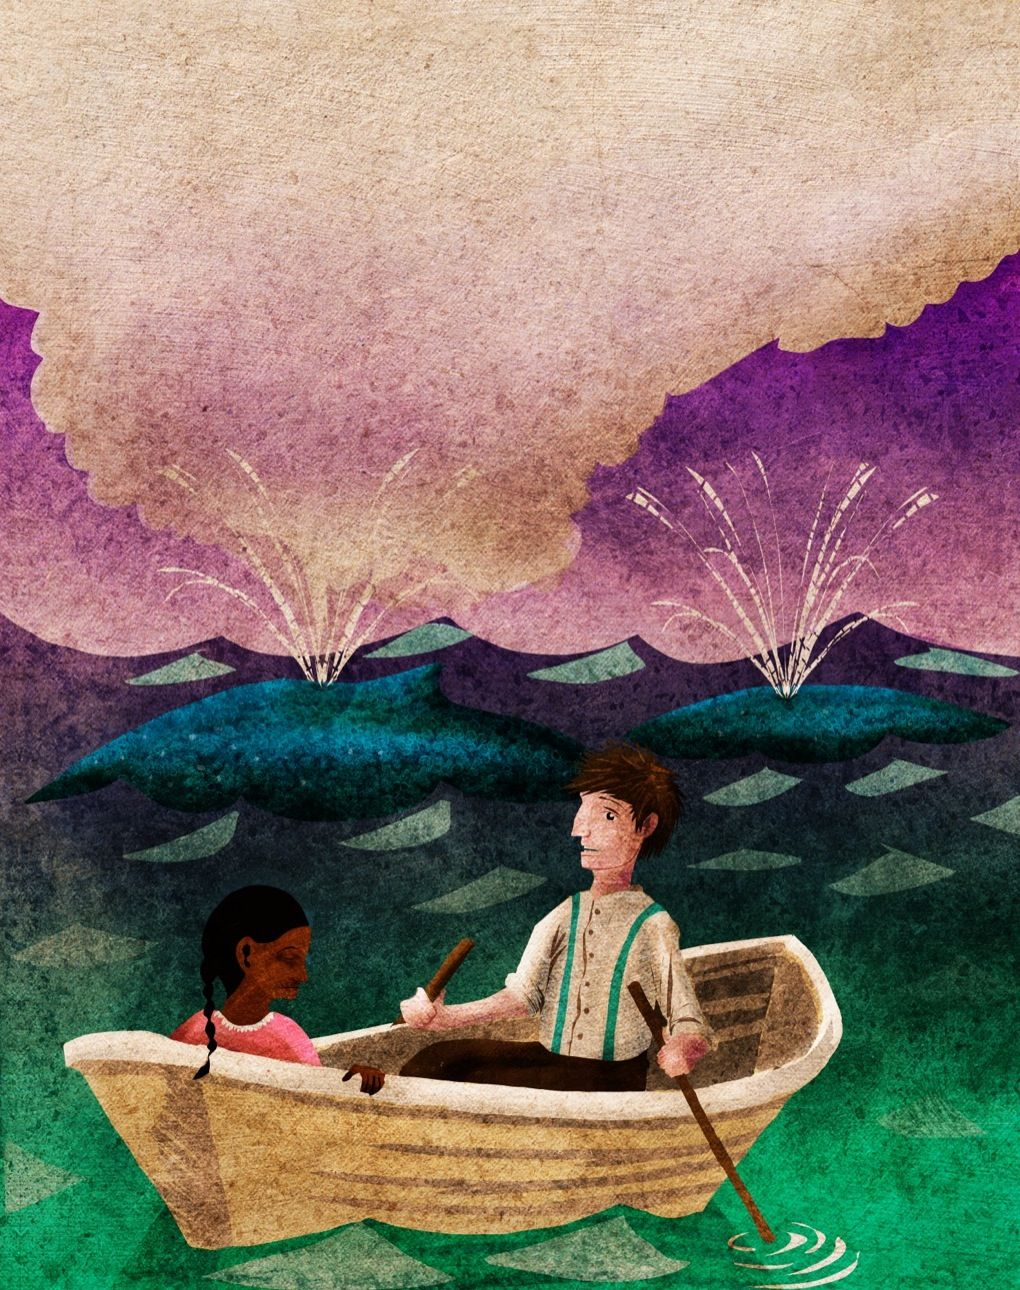 Illustration for Lizzie Bright & the Buckminster Boy published by McGraw-Hill